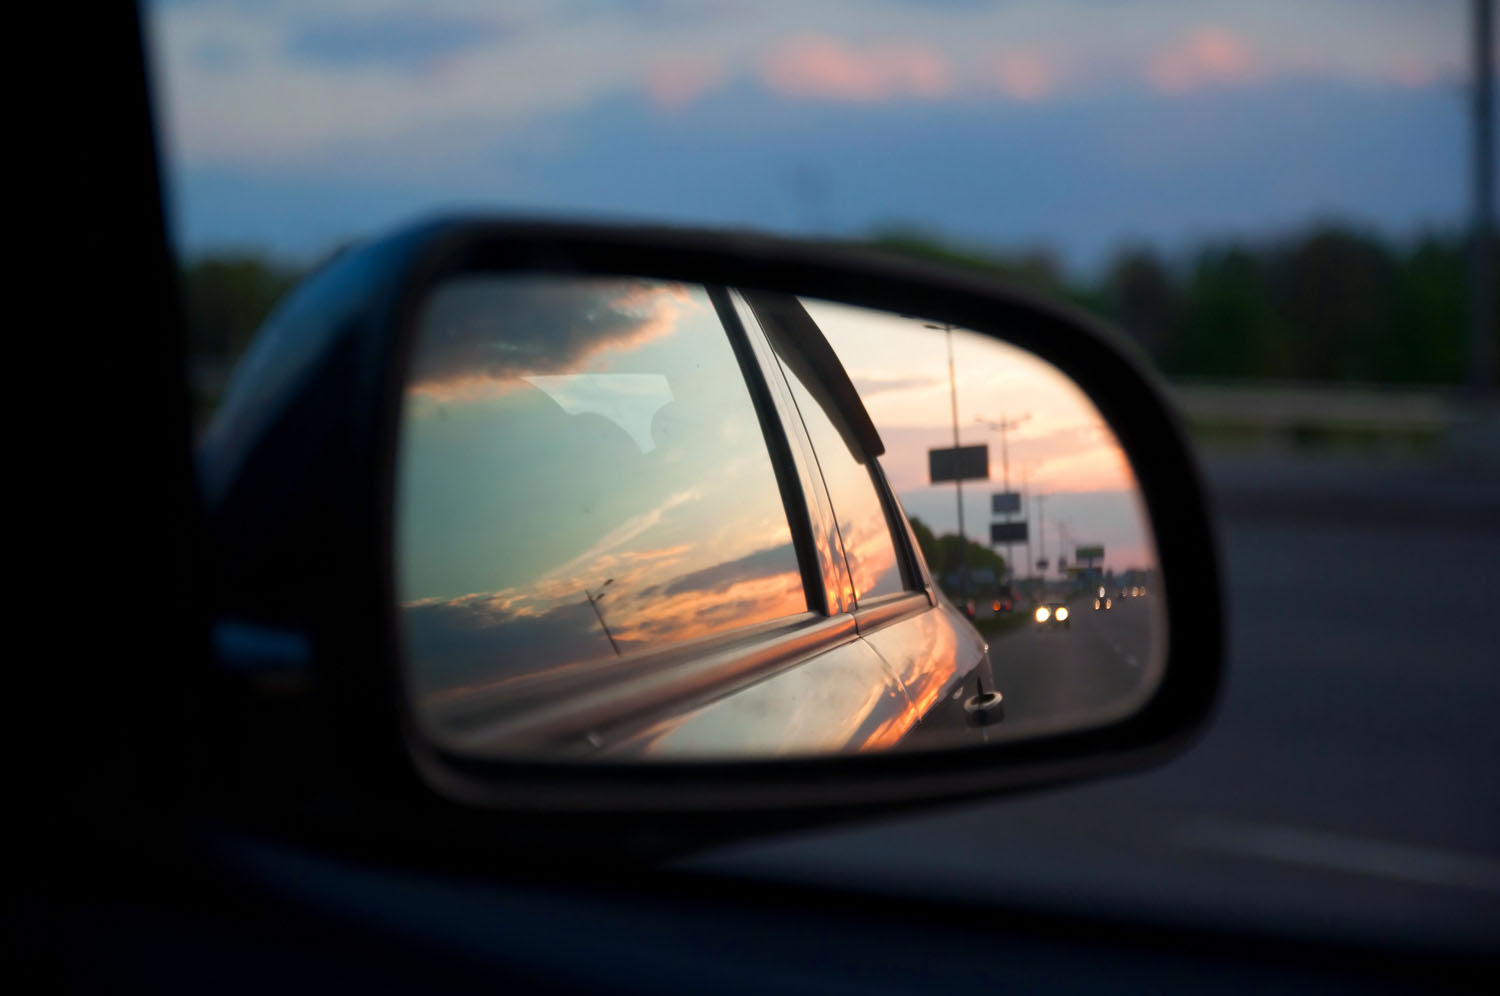 Objects in Mirror are Closer Than They Appear: How unconscious bias can affect your fiction. This image shows a side mirror of a car at sunset.